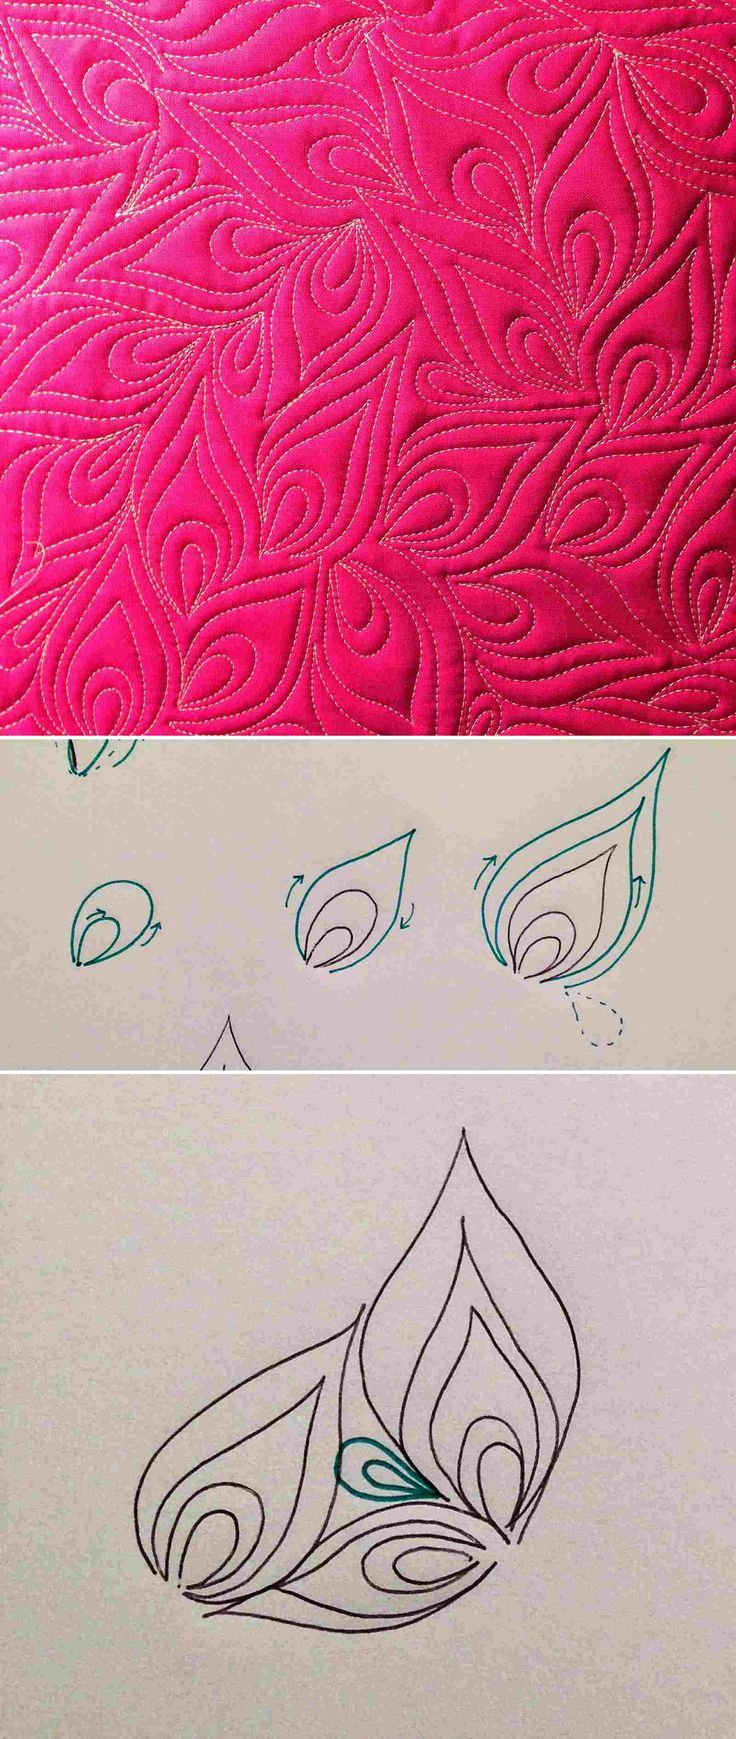 1000+ images about Quilting ideas on Pinterest Circles, Machine quilting and Quilt modern